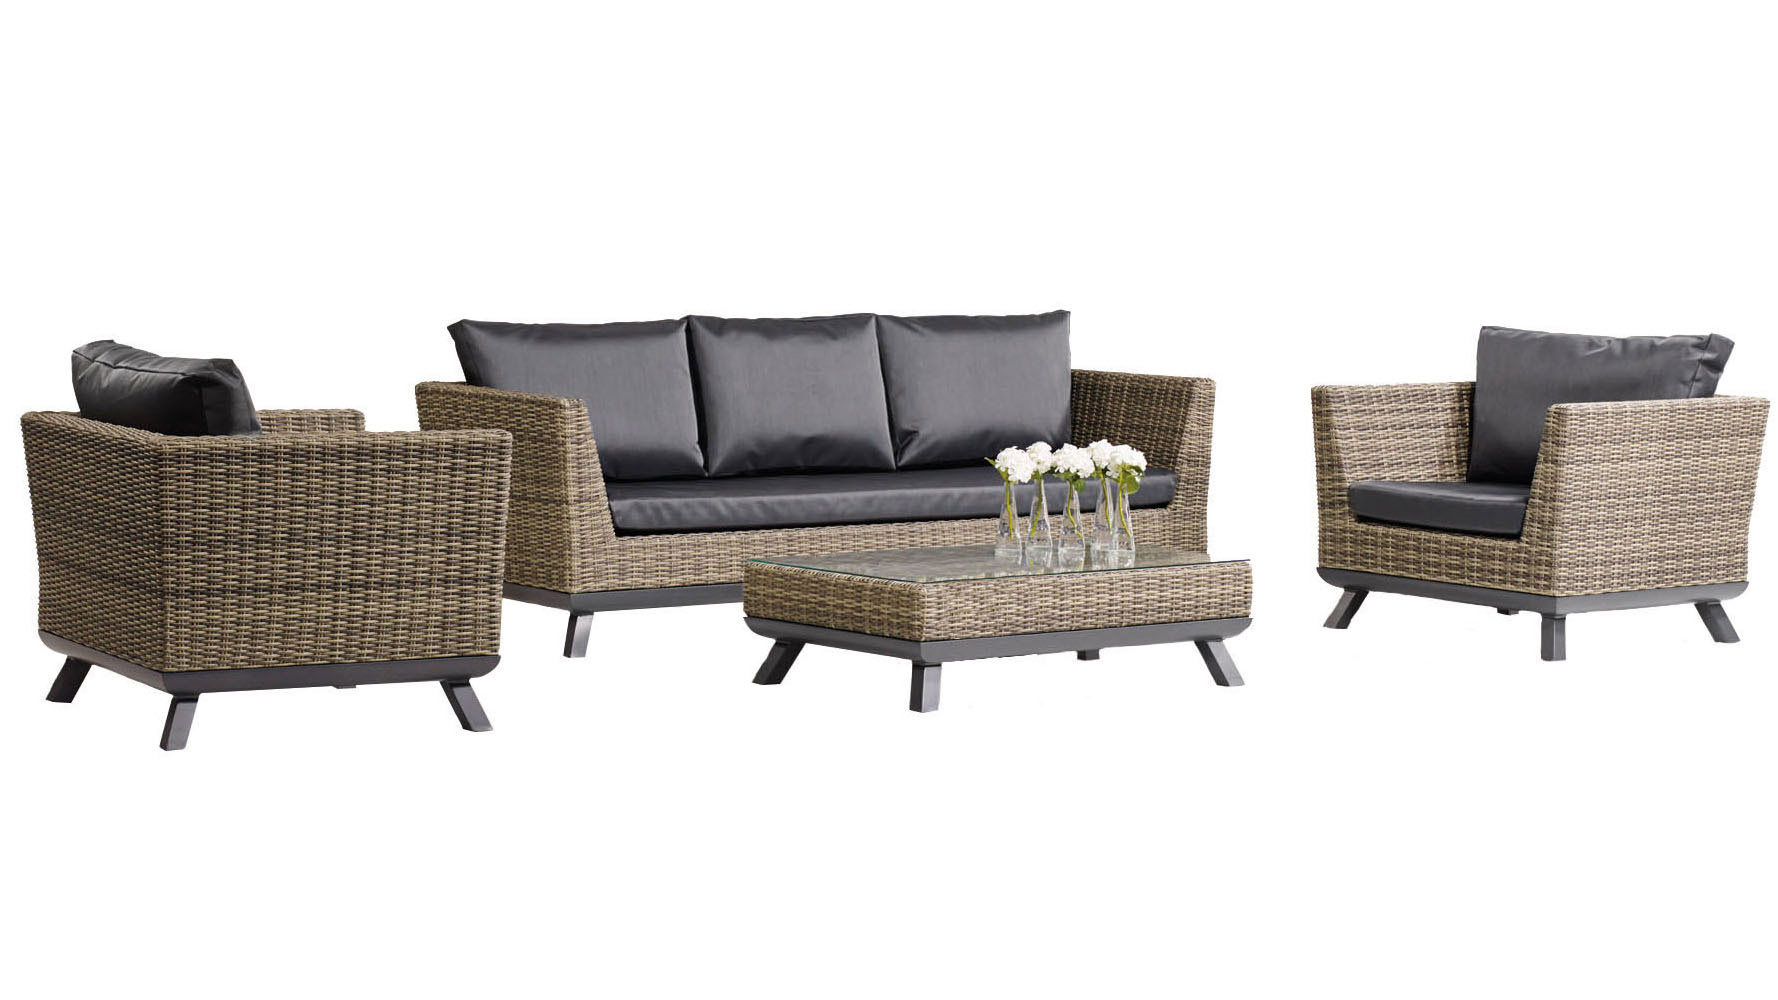 Outdoor Lounge Set Alle Ideen Fur Ihr Haus Design Und Mobel